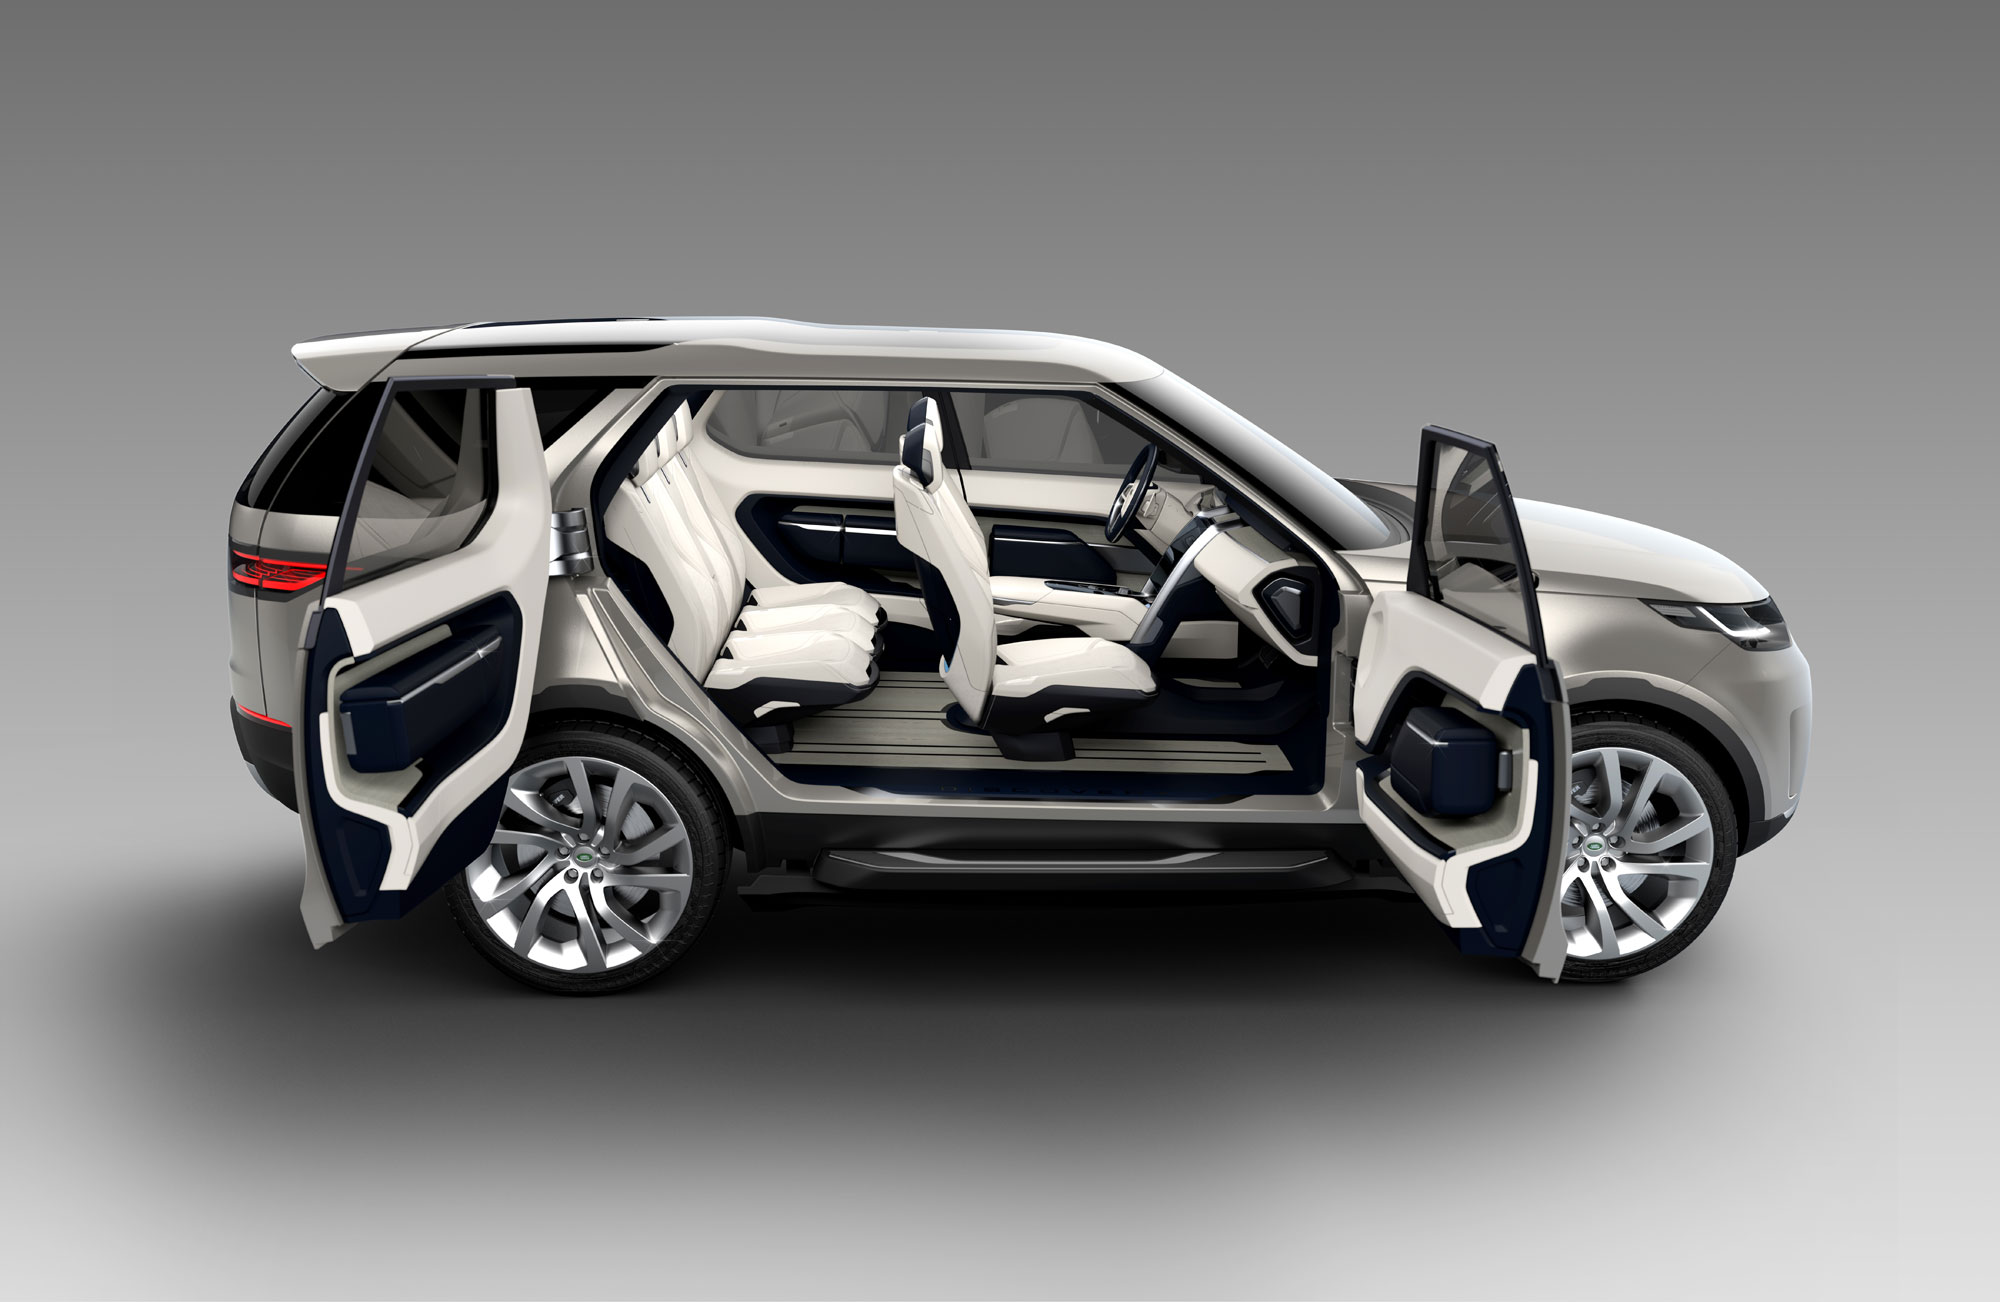 The Land Rover Discovery Vision Concept Revealed Rides Magazine